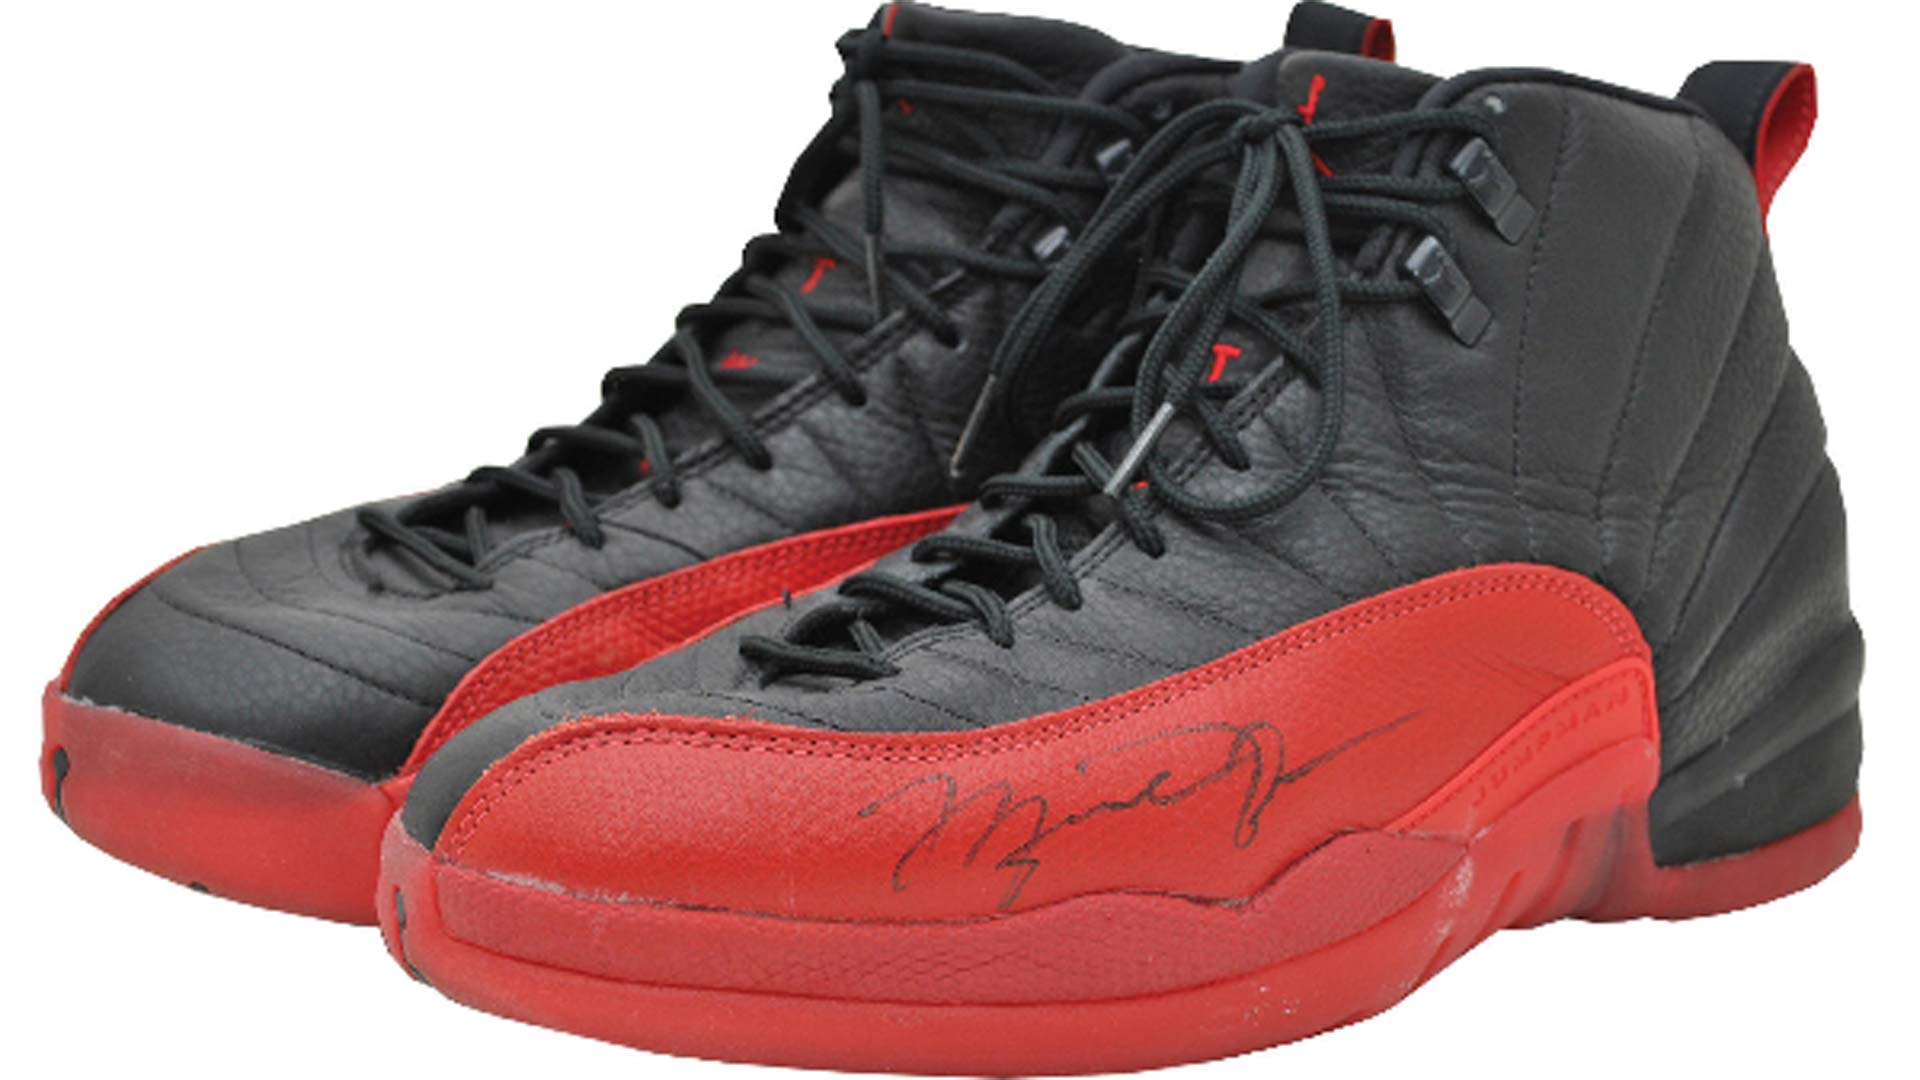 Flu-Game-Shoe-121213-FTR-Auction.jpg